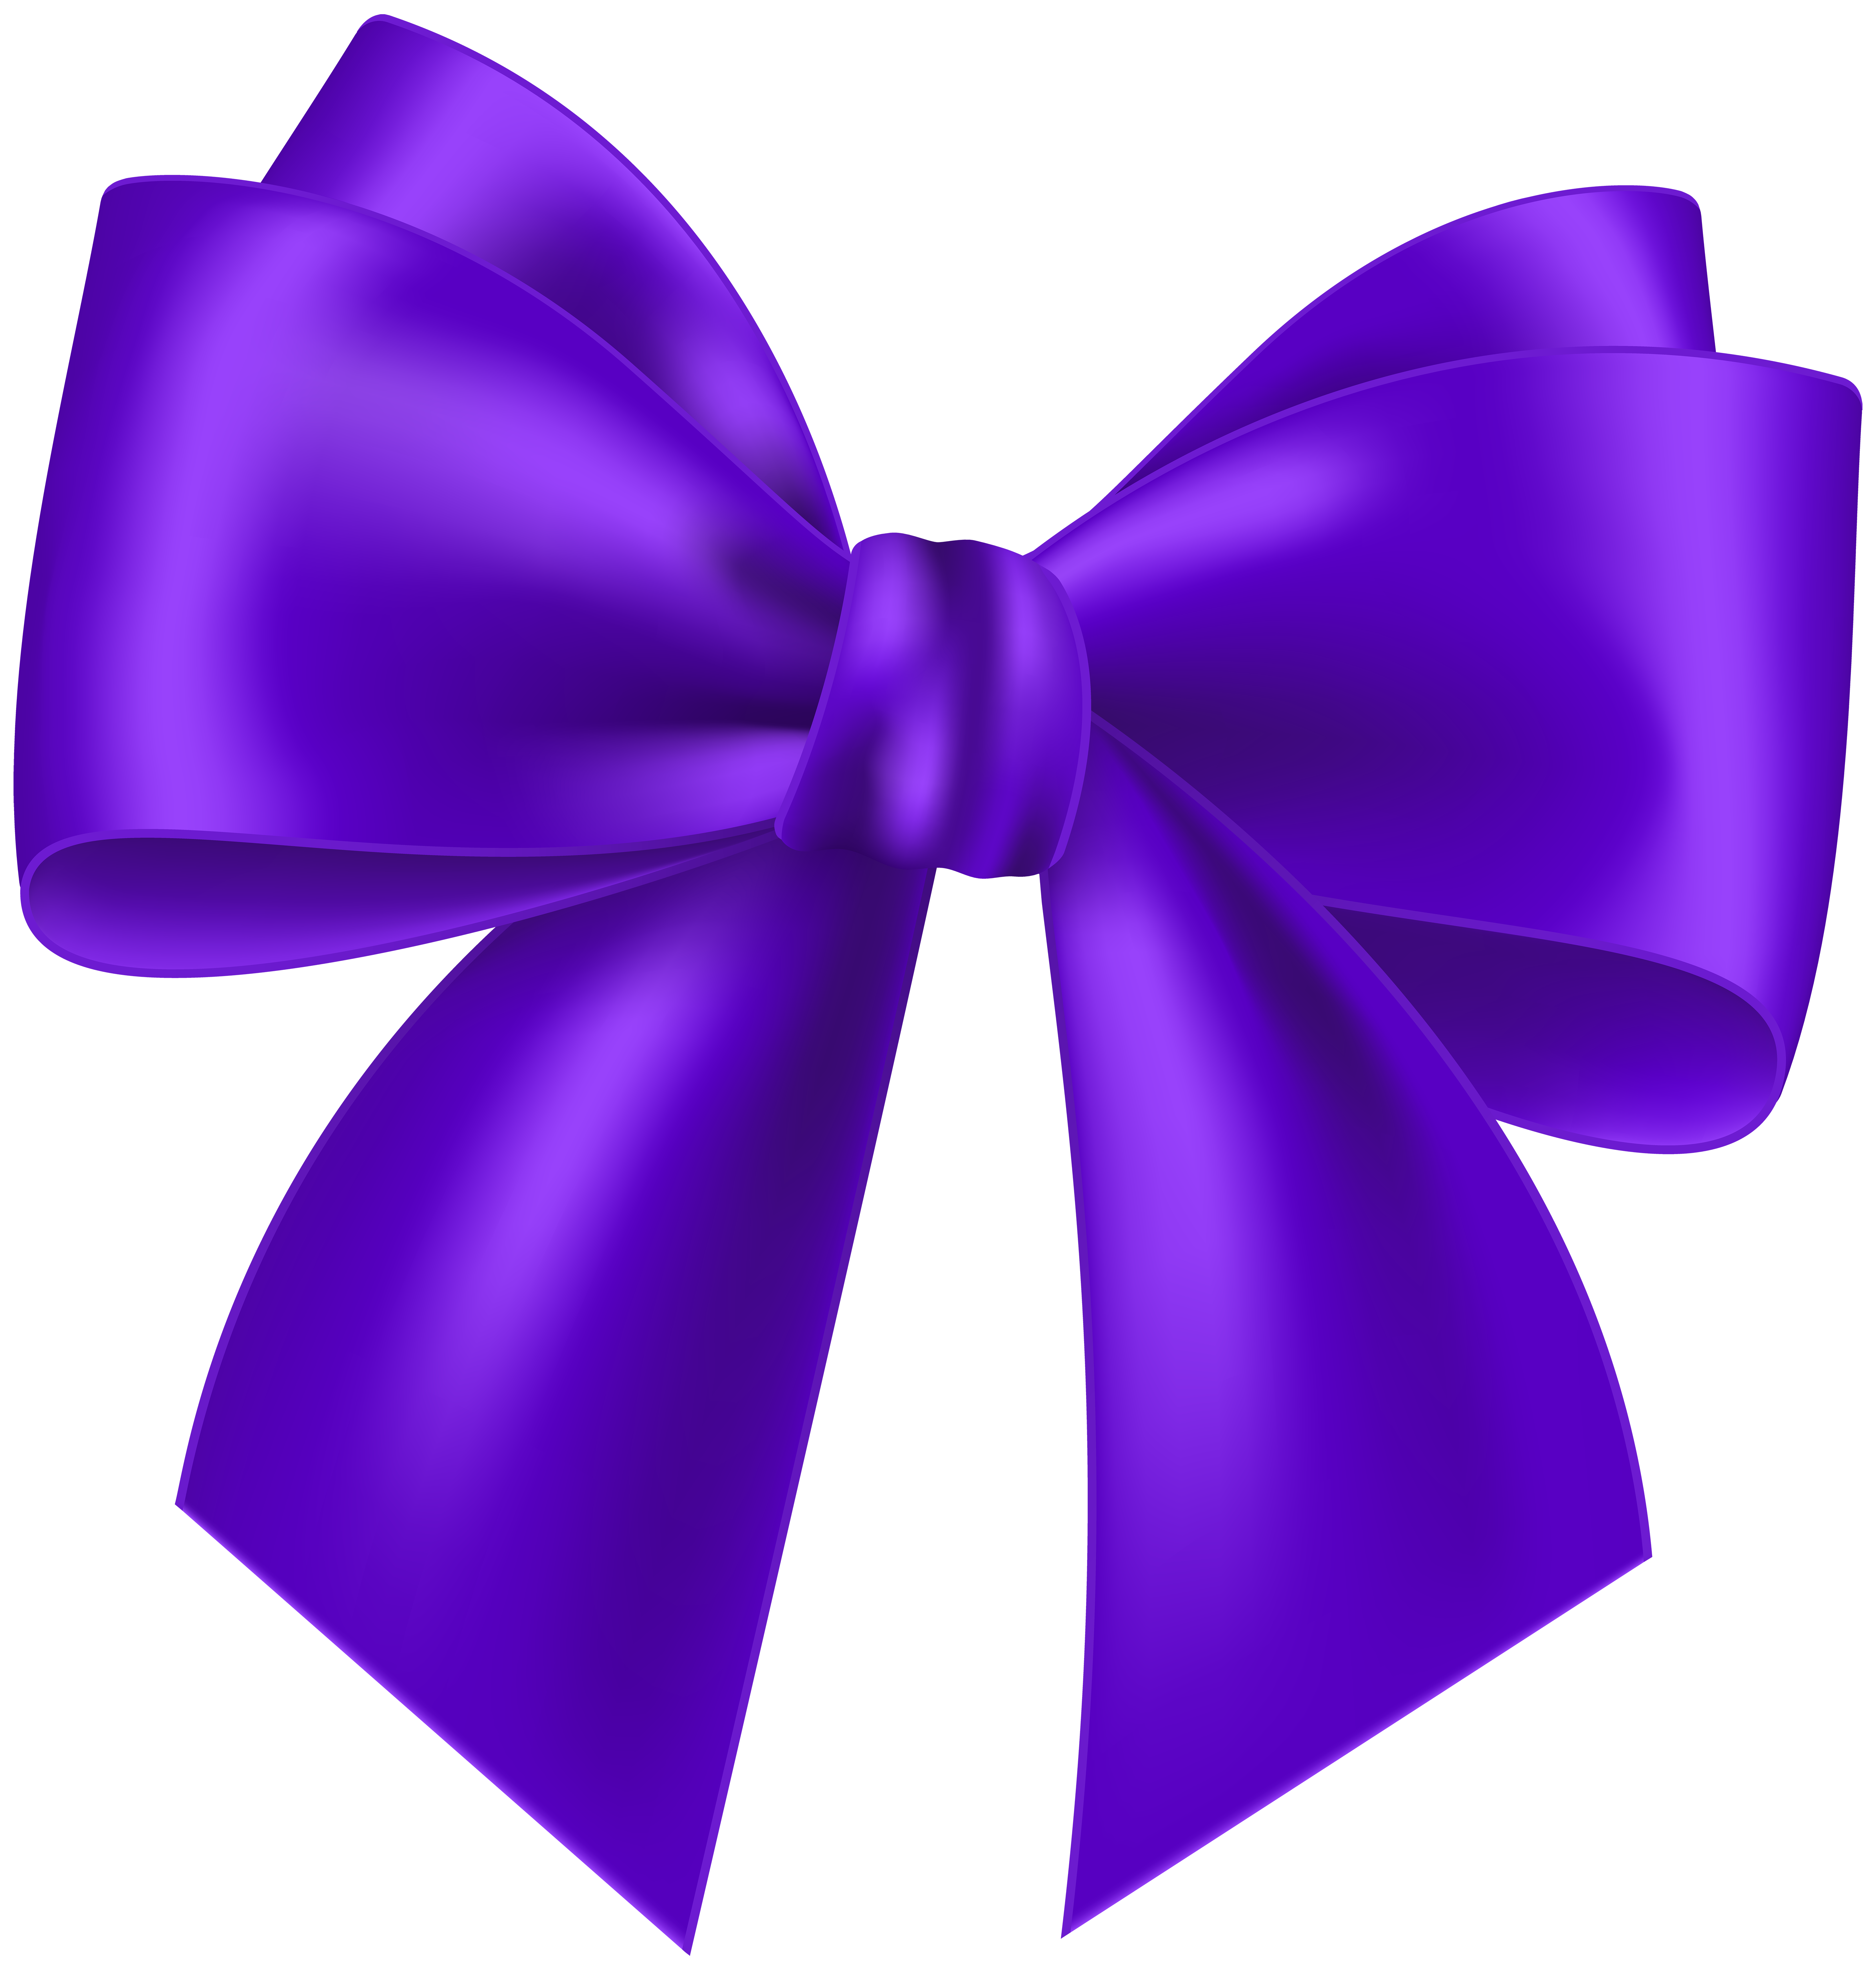 Purple snowflake clipart transparent picture black and white stock Purple Bow Transparent Clip Art Image | Gallery Yopriceville - High ... picture black and white stock